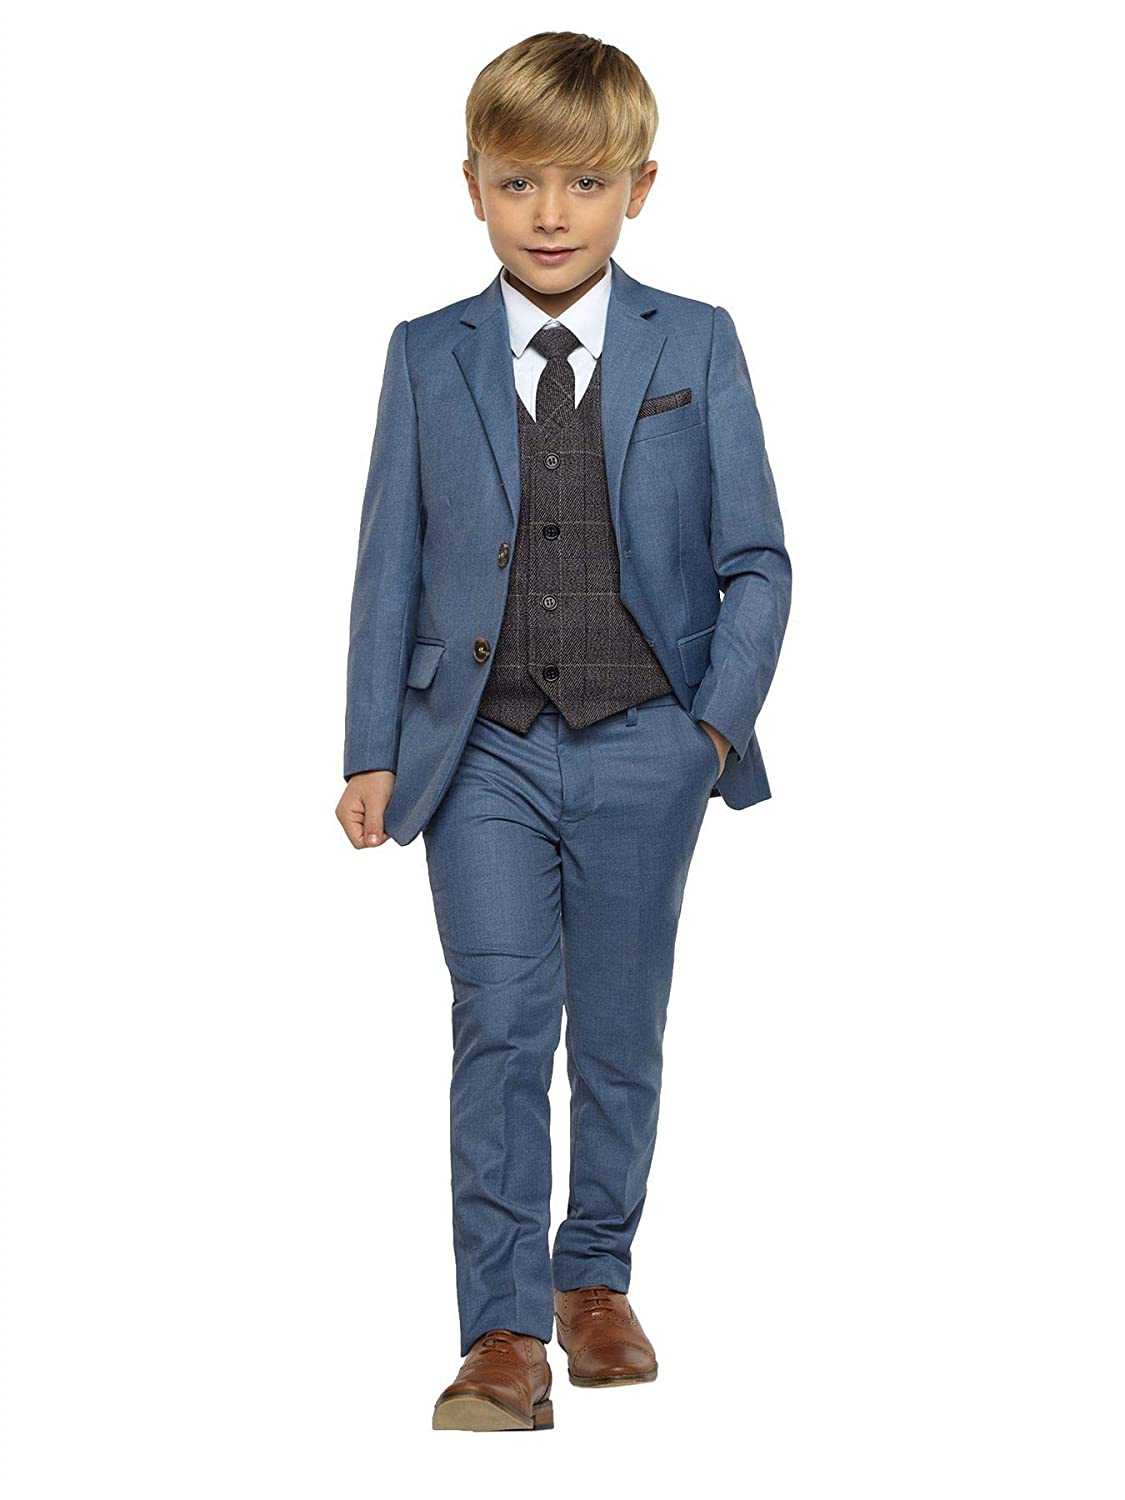 Paisley of London, Sampson Chambray, Boys Wedding Suit, Slim Fit Suit, with Benedict Gray Navy Vest, X-Large - 20